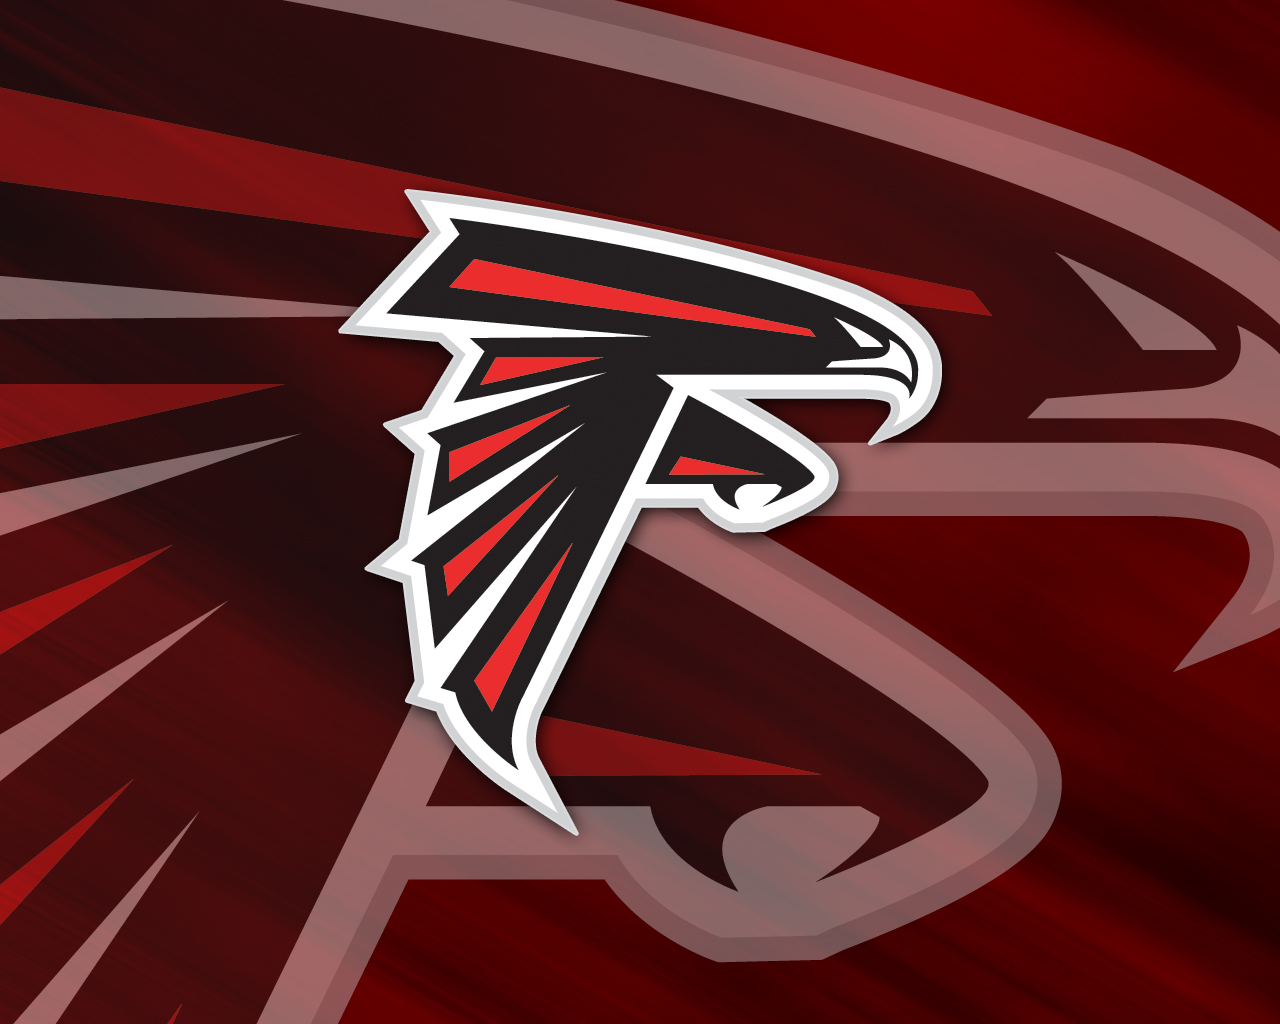 ATLANTA FALCONS Franchise history